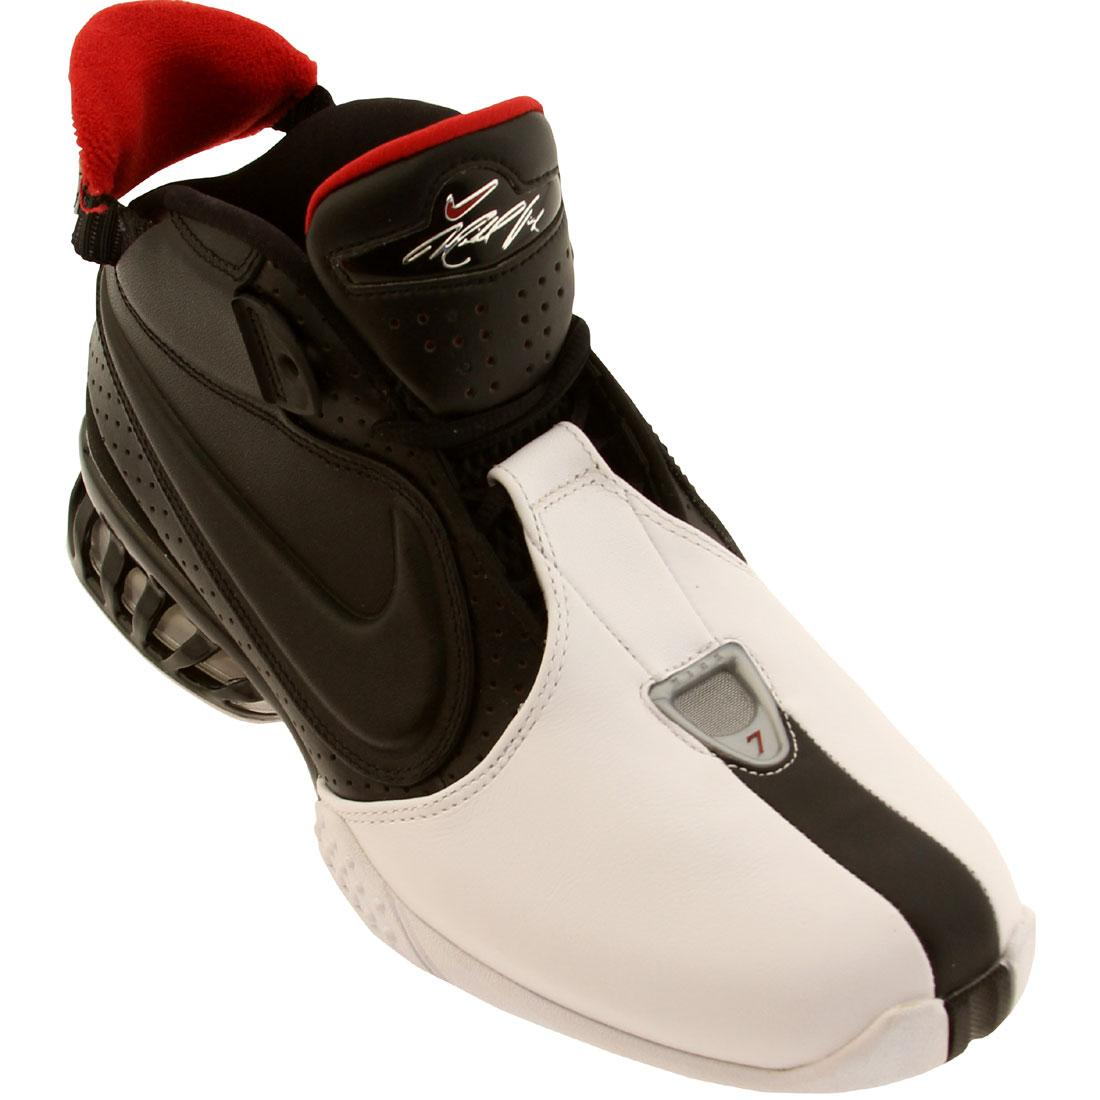 Michael Vick Shoes Size